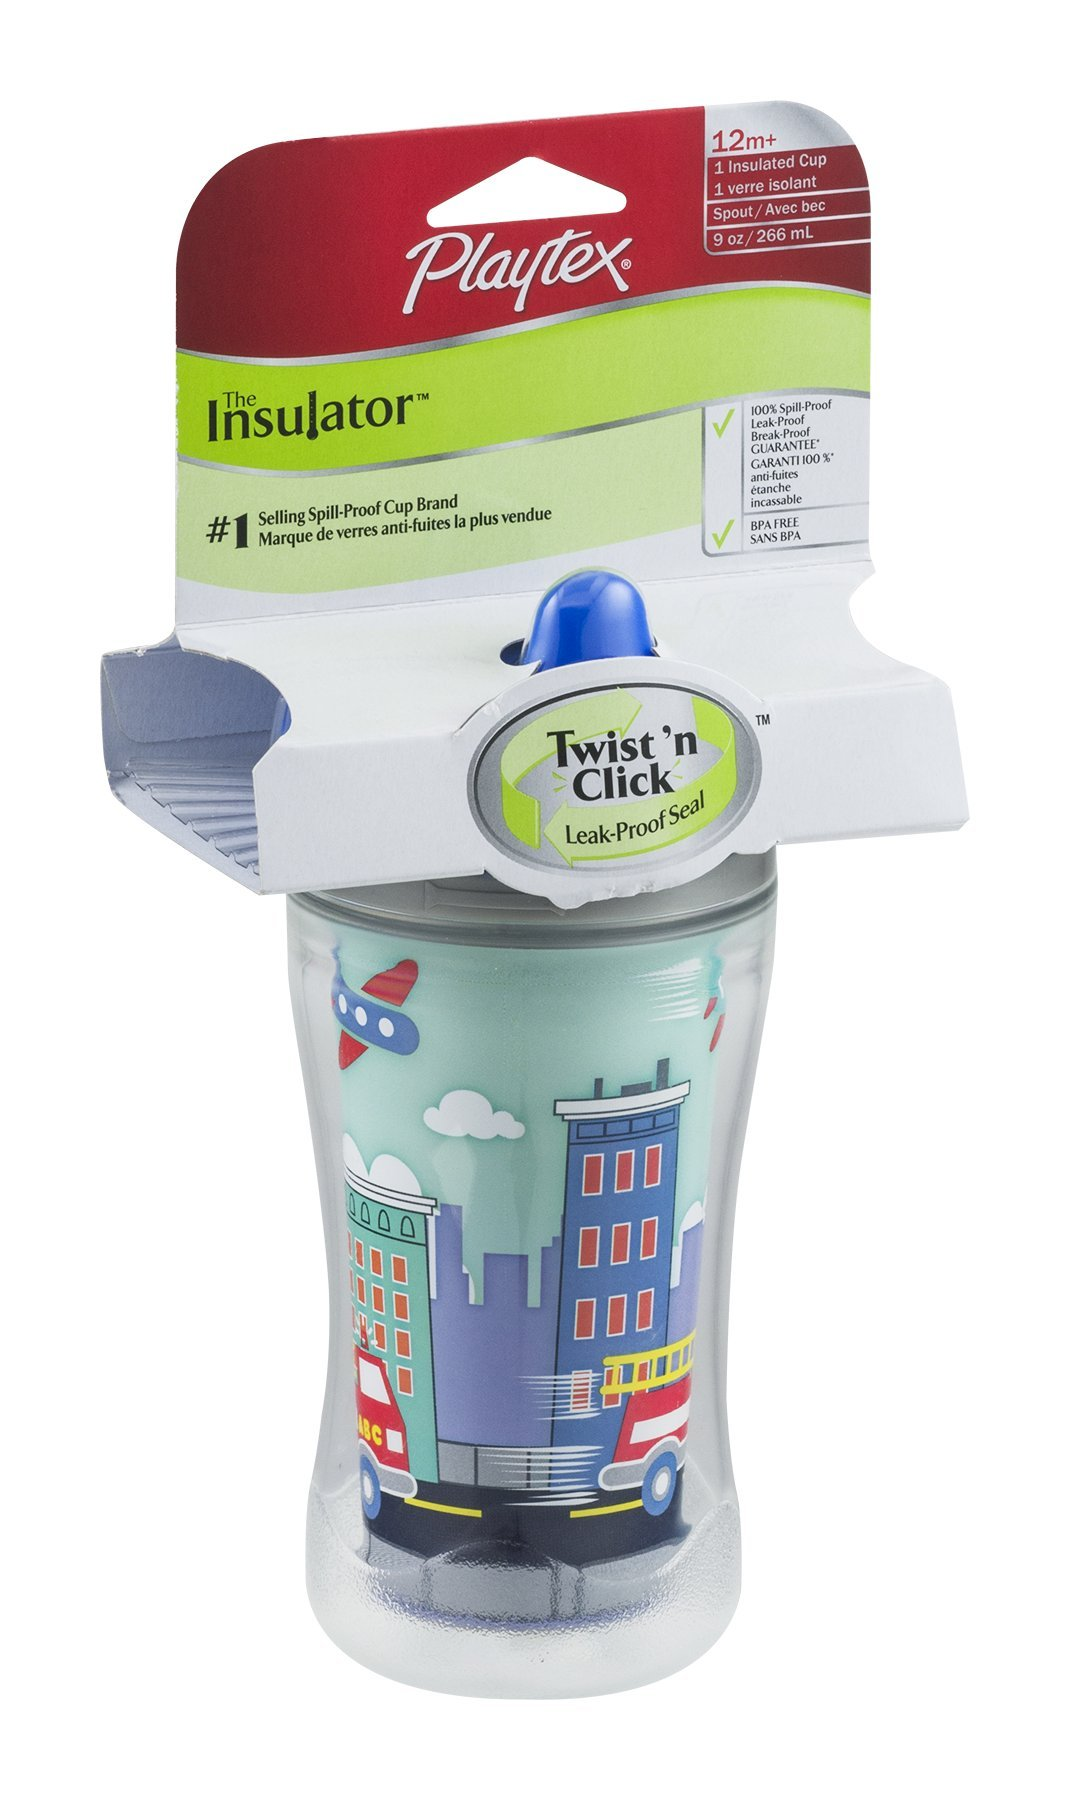 Playtex The Insulator Insulated Cup 12m+ 9 OZ (Pack of 9)  - (Colors/styles May Vary)